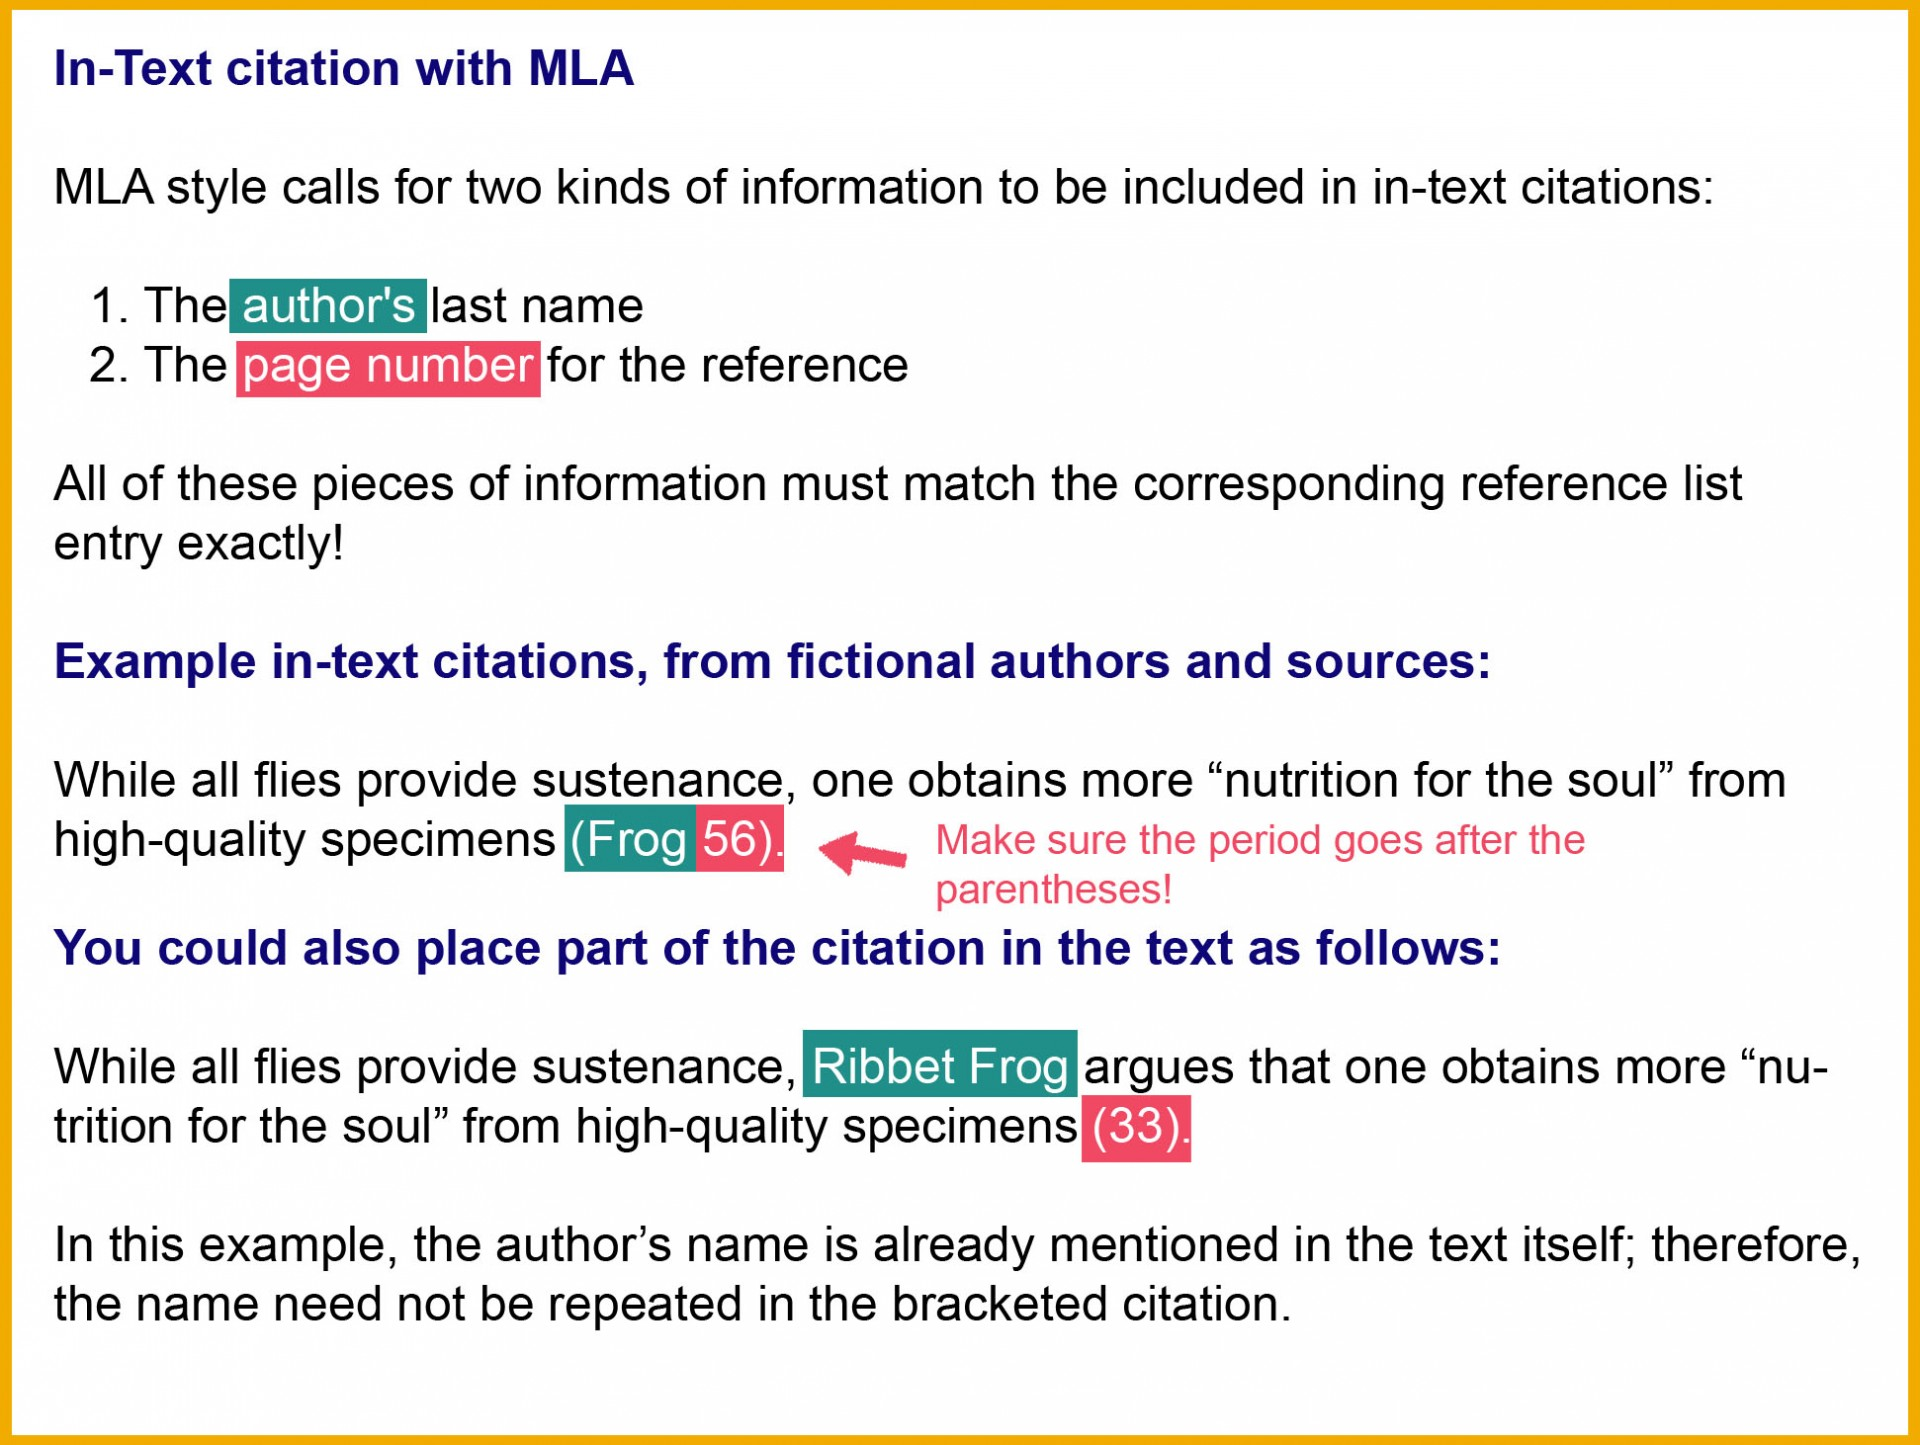 001 Research Paper Mla In Text Citation For Samplewrkctd